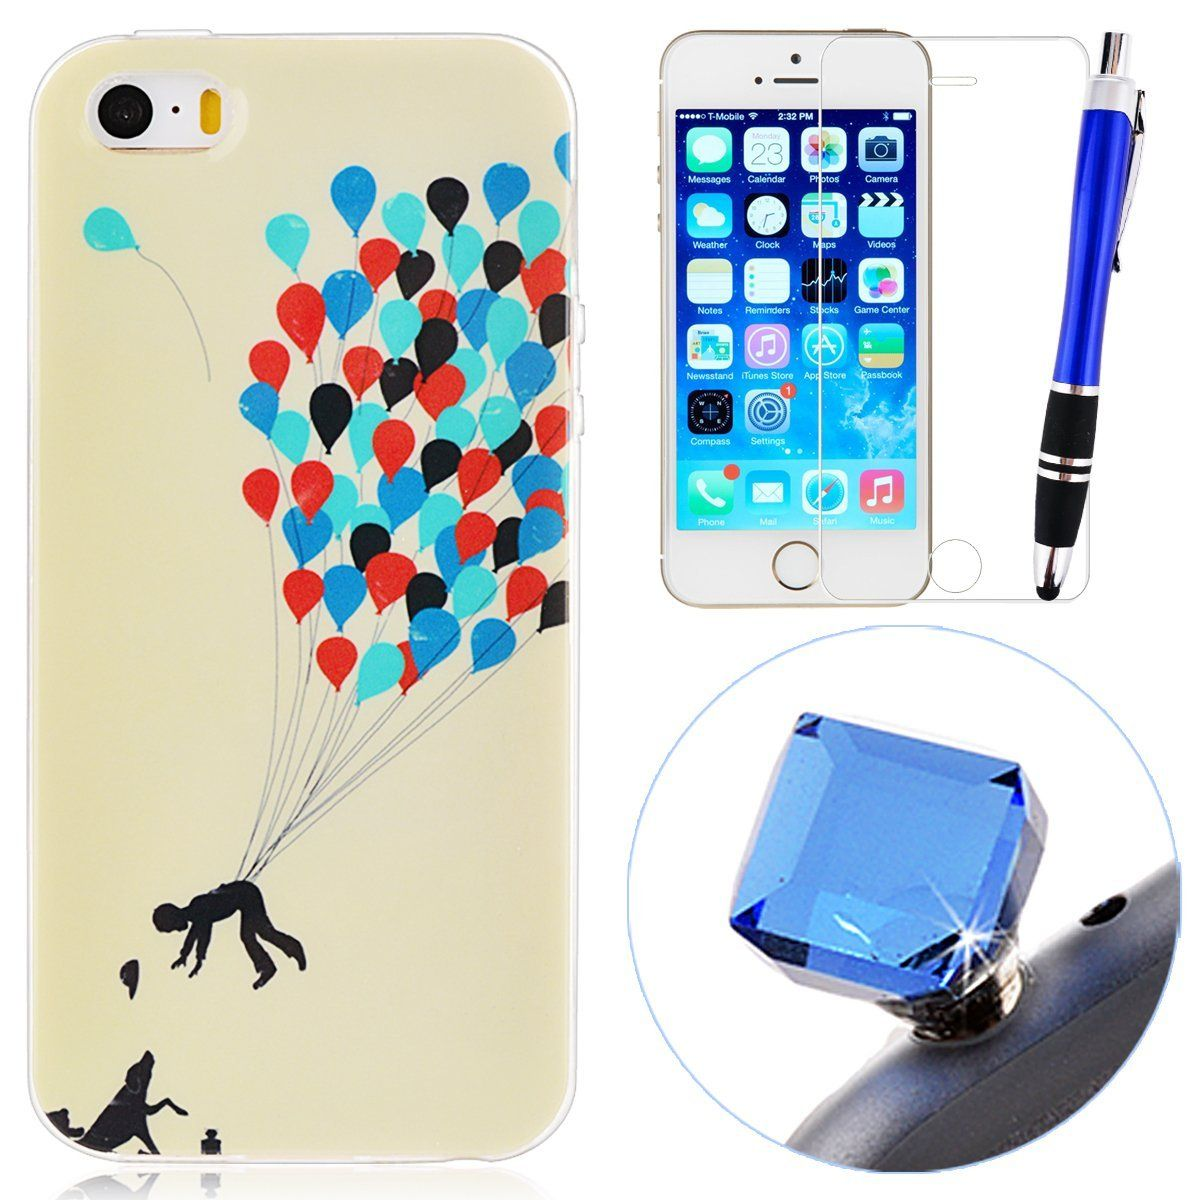 Grandever soft tpu silicone case for iphone 5 iphone 5s